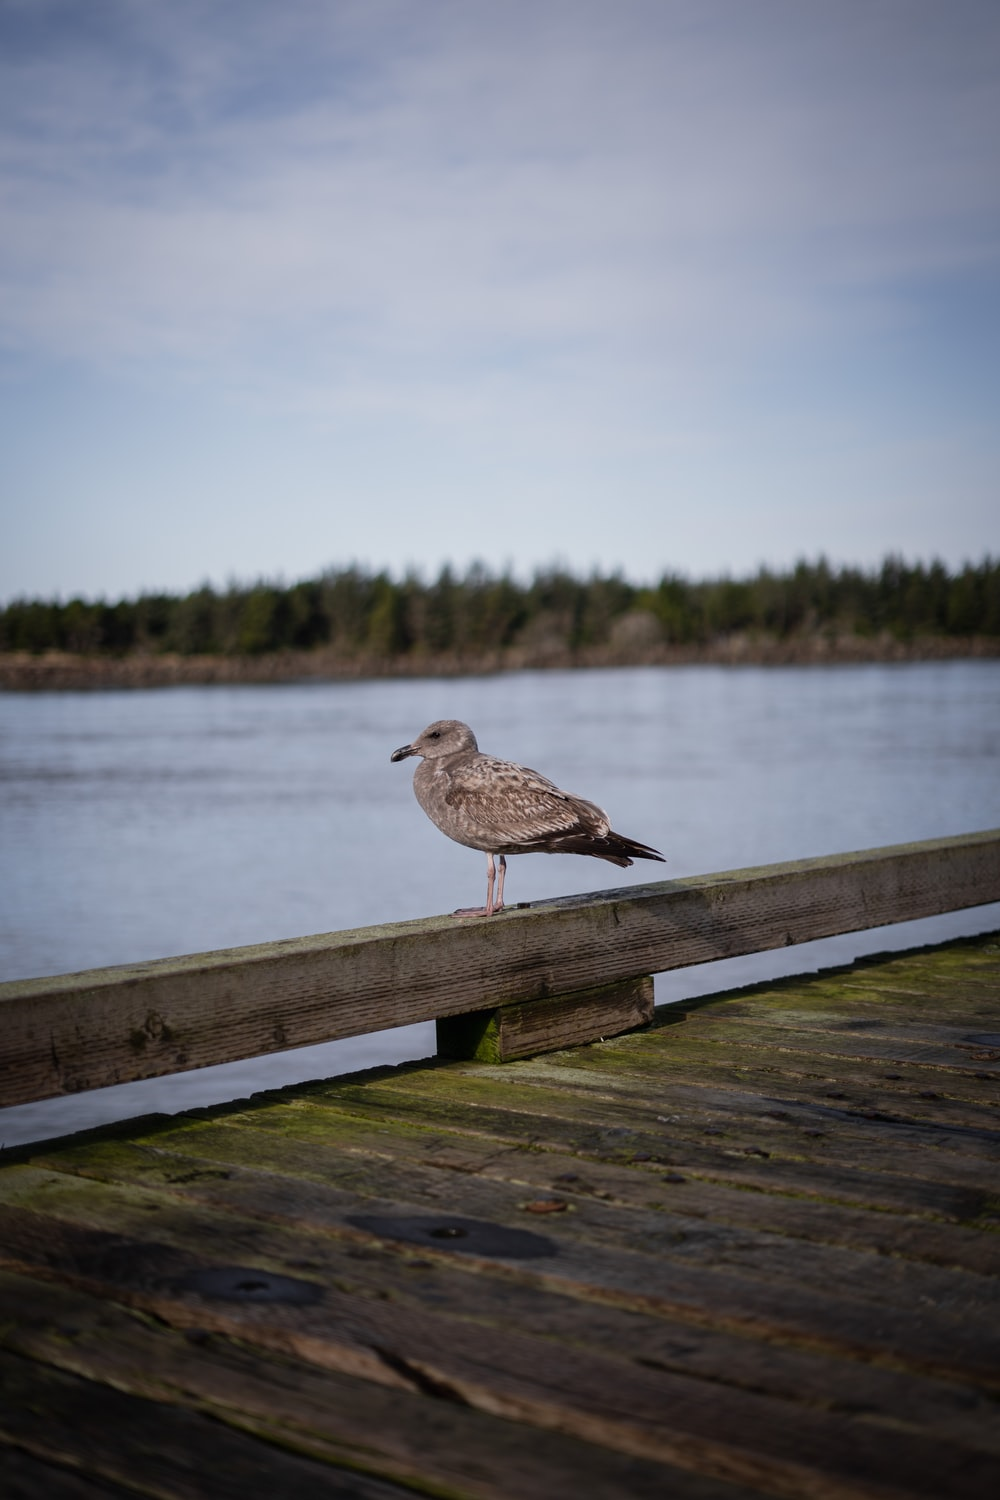 brown bird on brown wooden fence near body of water during daytime